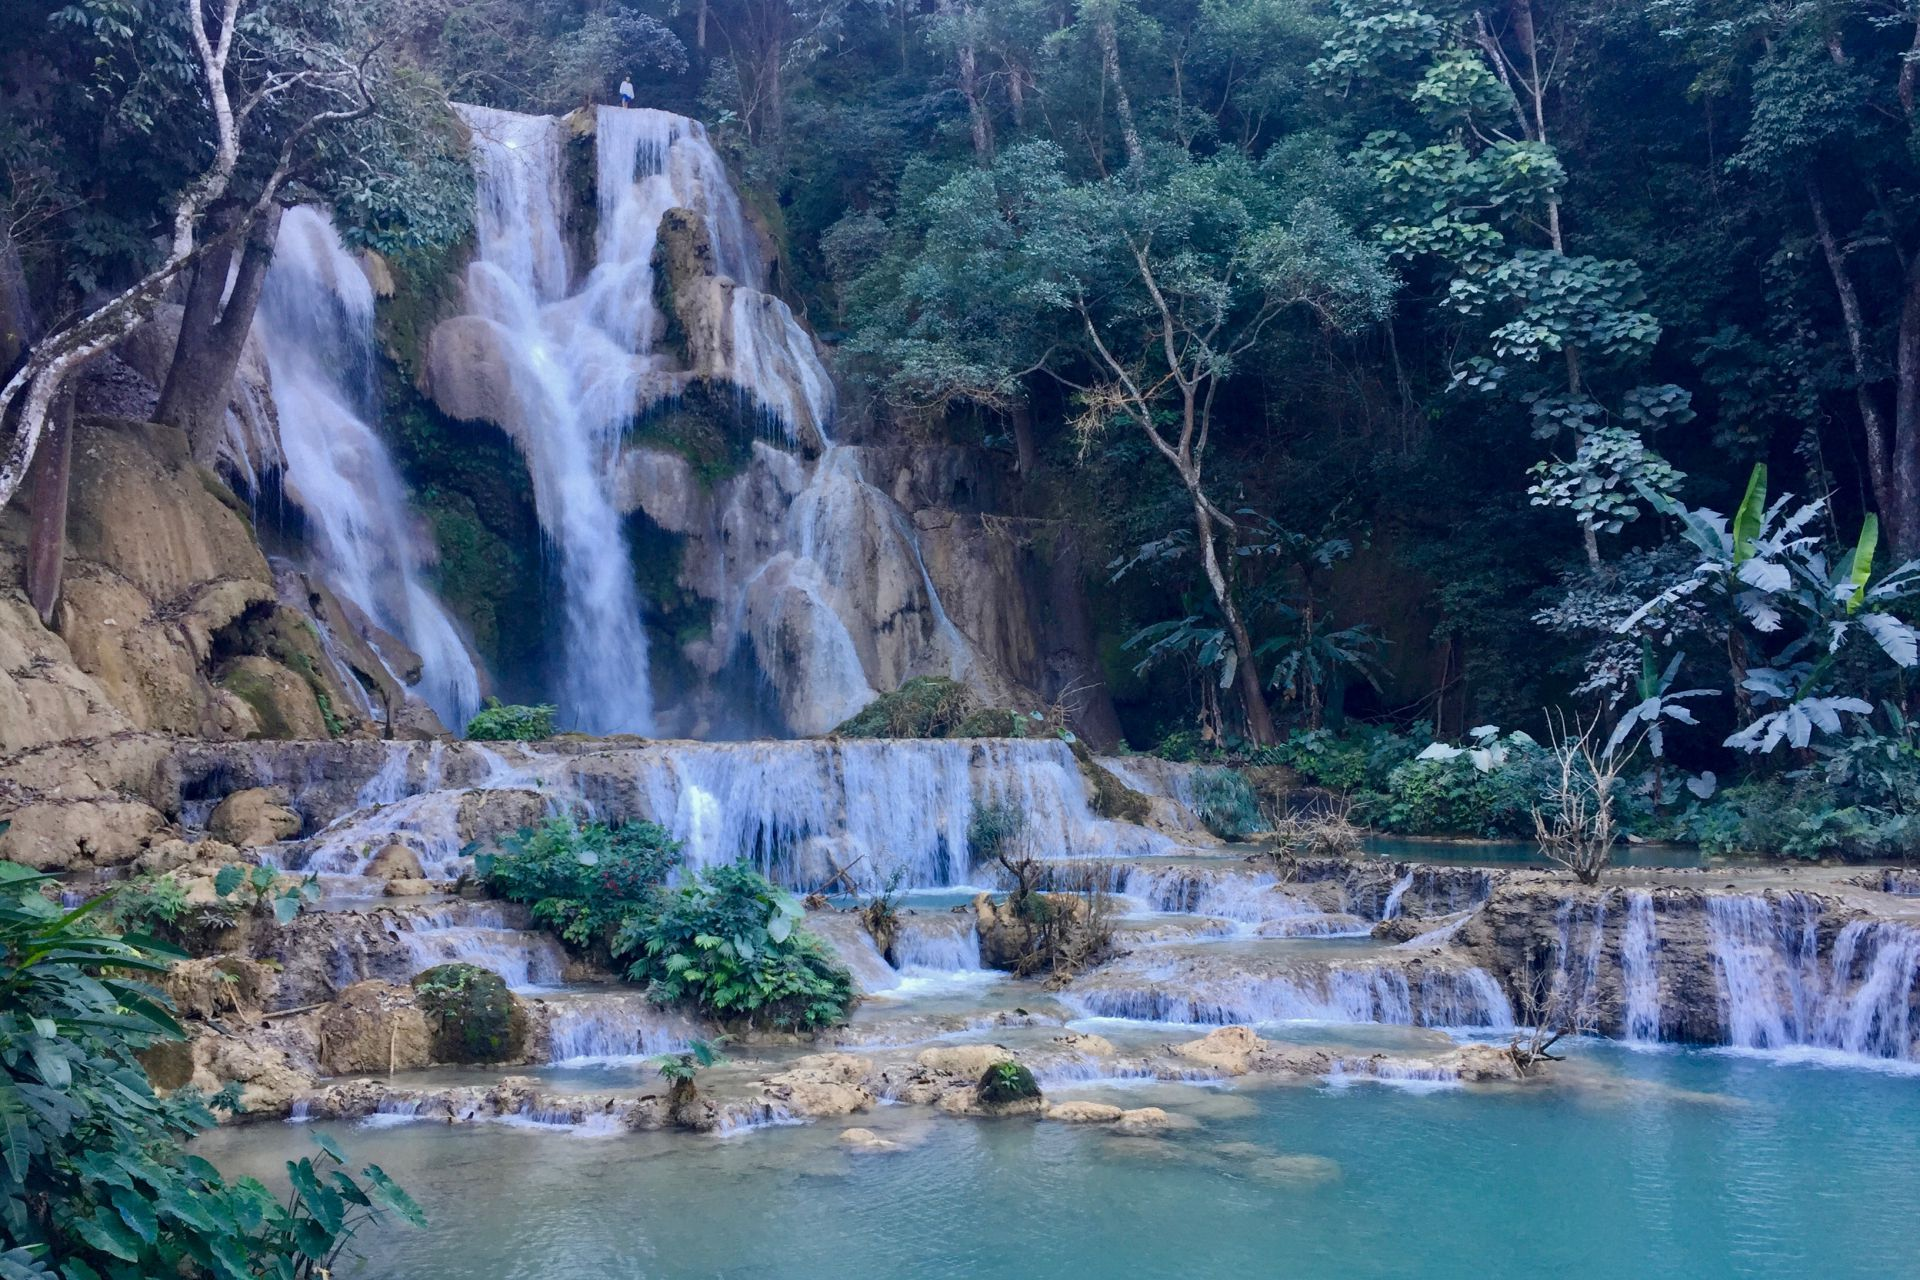 South-East-Asia-Laos-Luang-Prabang